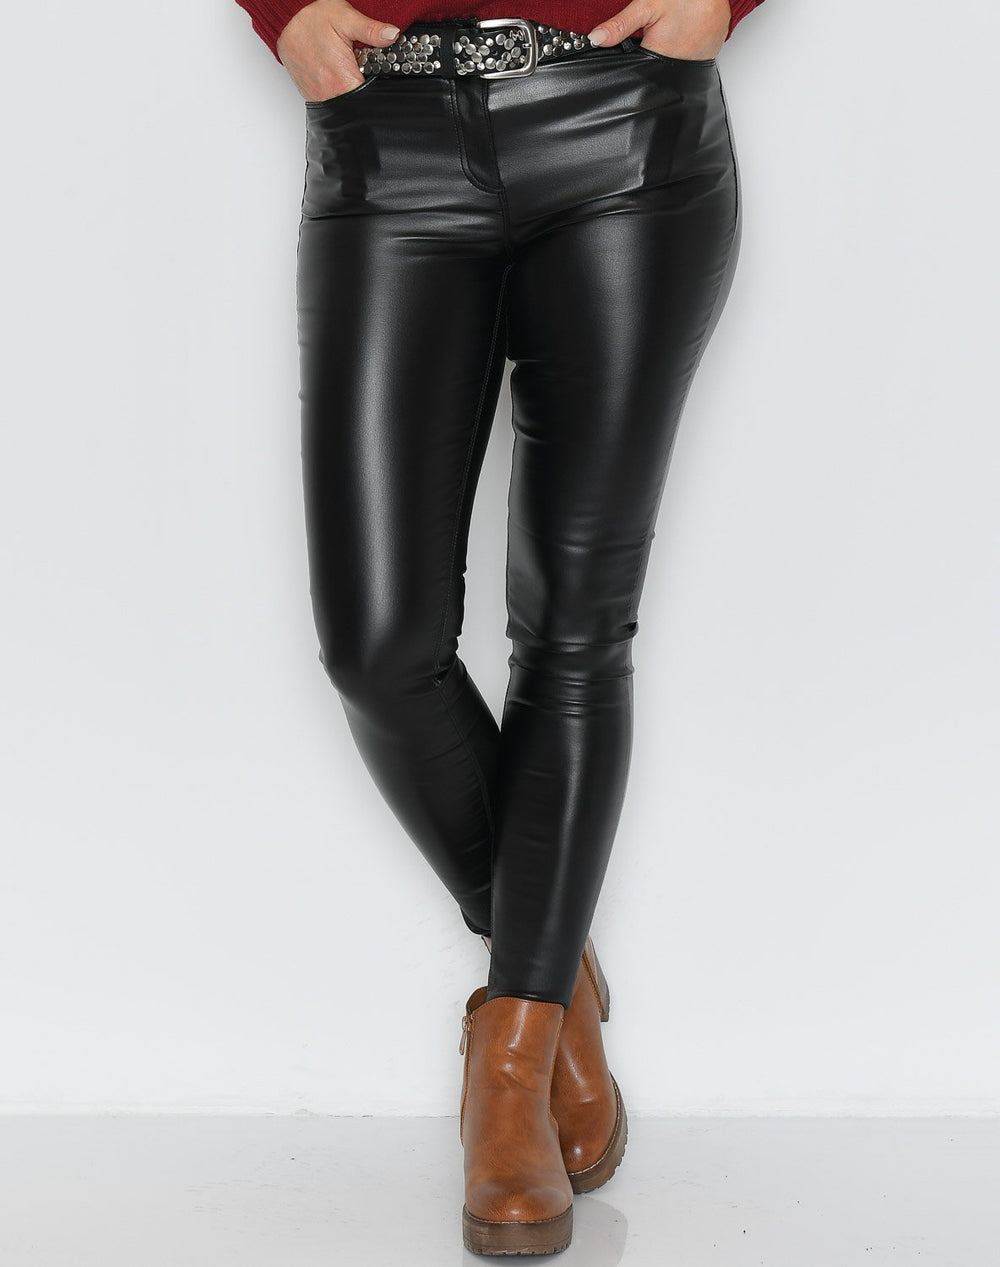 Soya Pam 3 pants black - Online-Mode